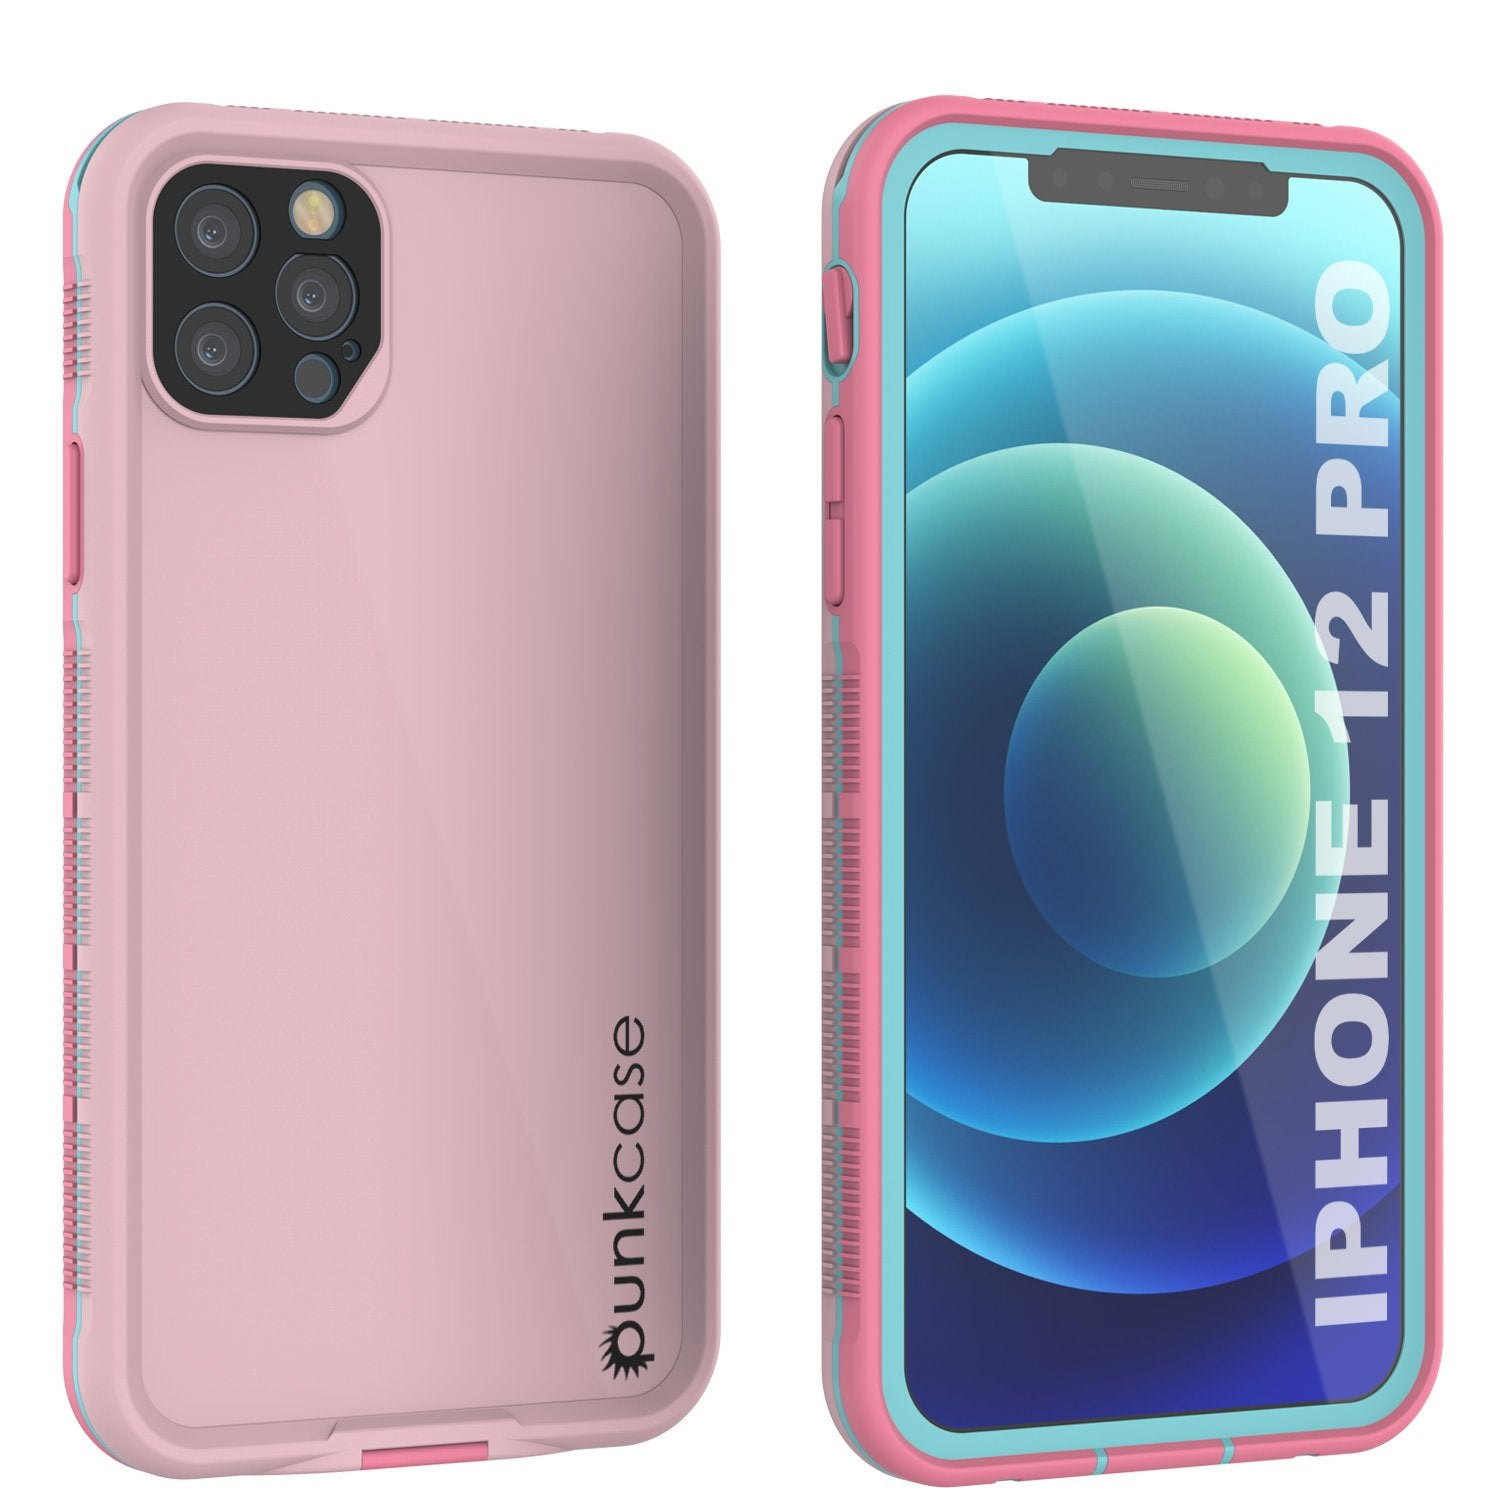 Punkcase iPhone 12 Pro Waterproof Case [Aqua Series] Armor Cover [Pink]